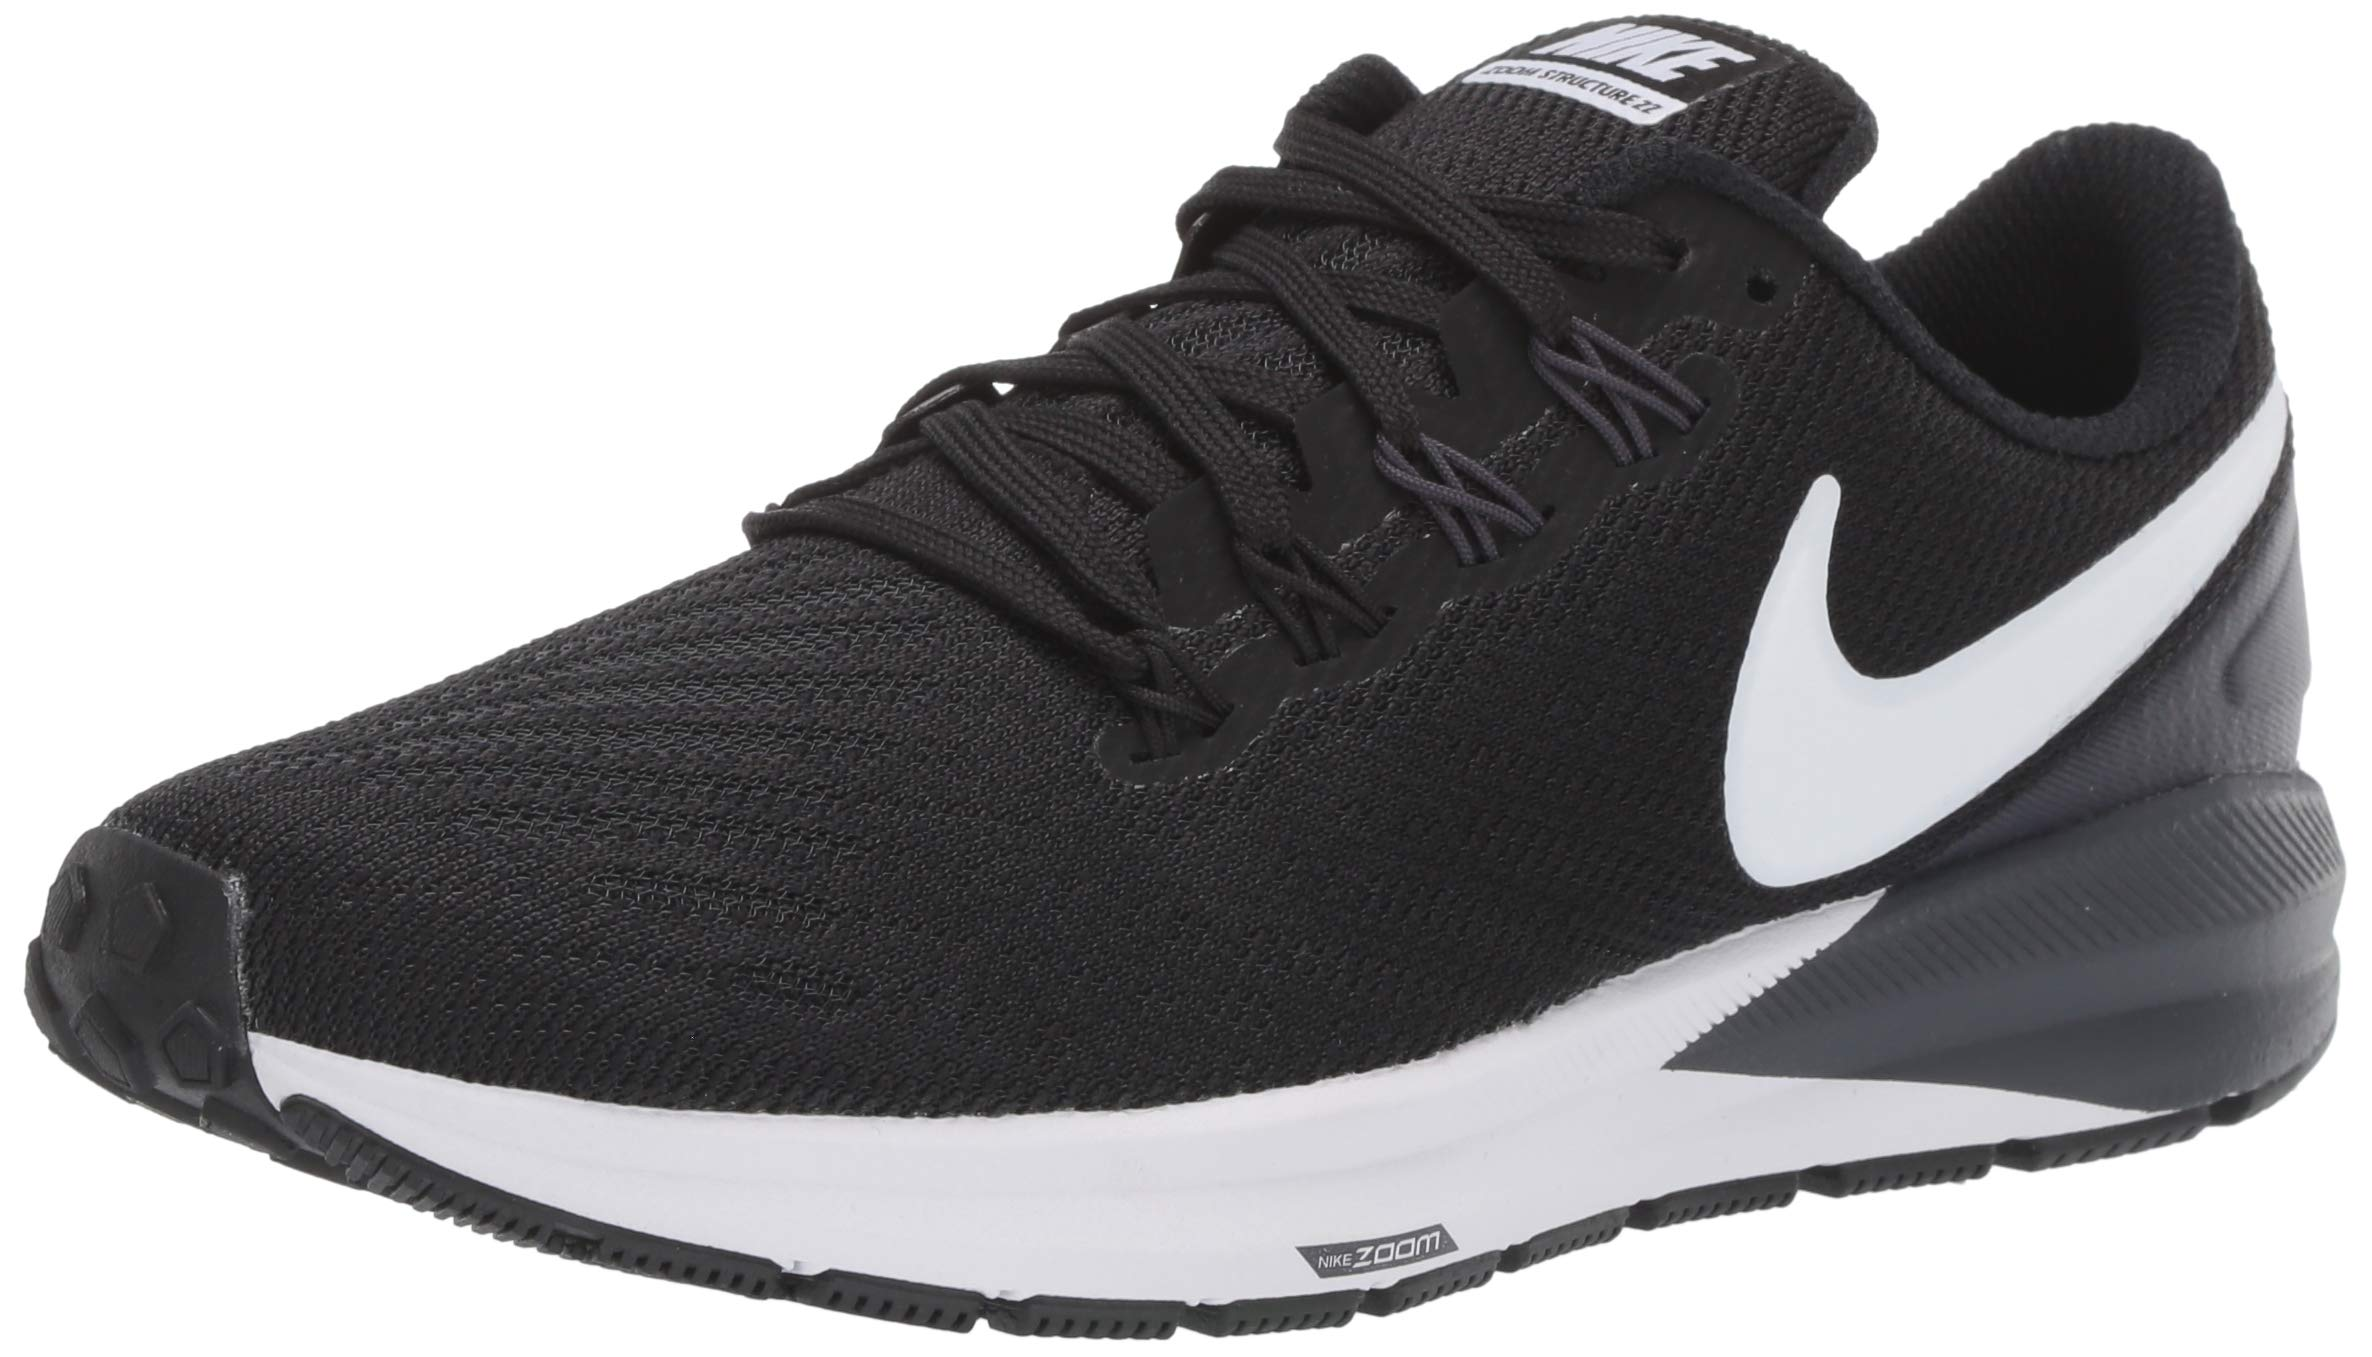 Nike Women's Air Zoom Structure 22 Running Shoe Black/White/Gridiron Size 9 M US by Nike